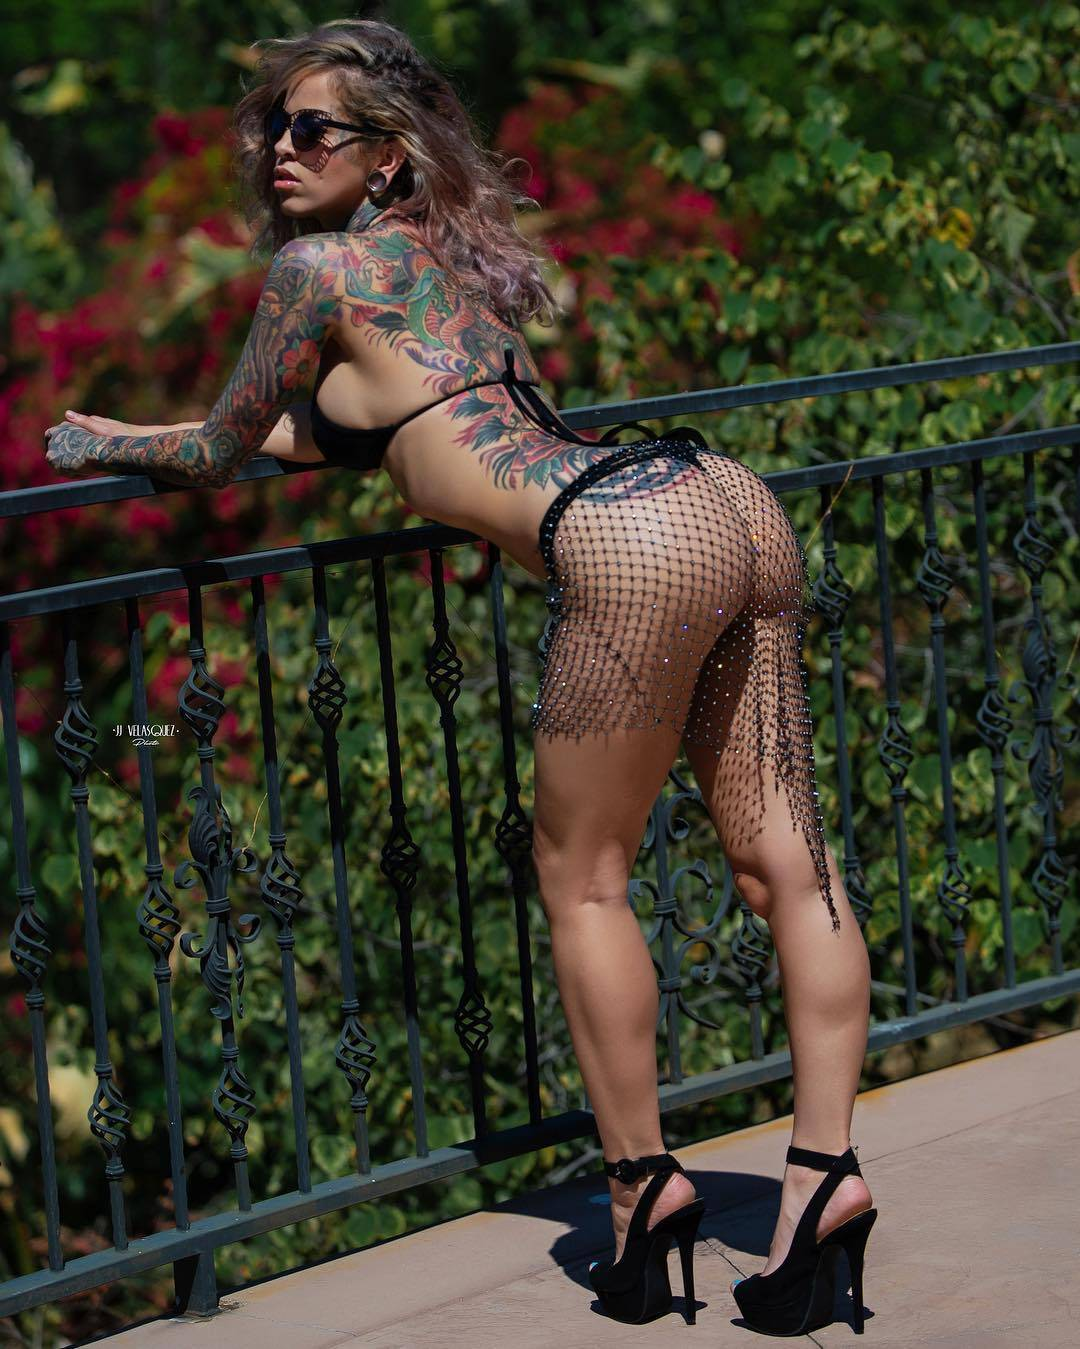 Tattoo model Madelyn Lance, alternative photo model, girl with tattoo | USA